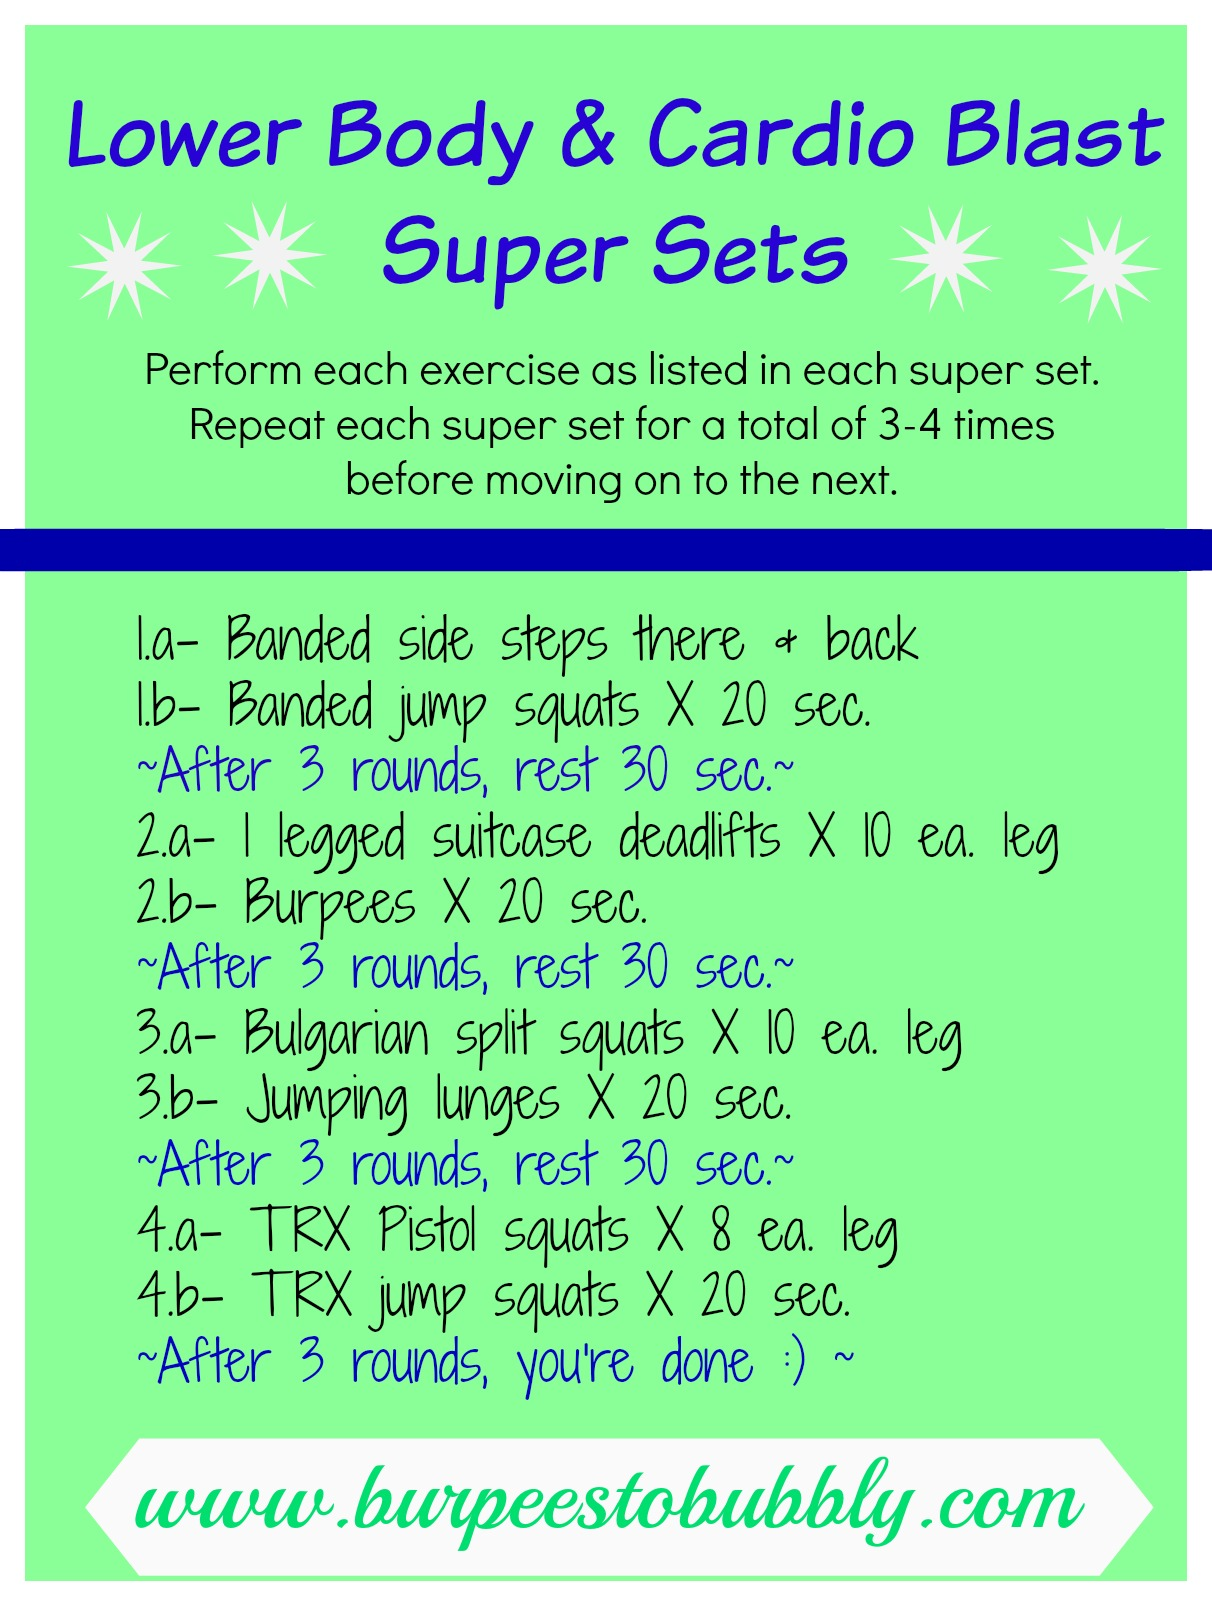 Wednesday Workout Lower Body Cardio Blast Super Sets